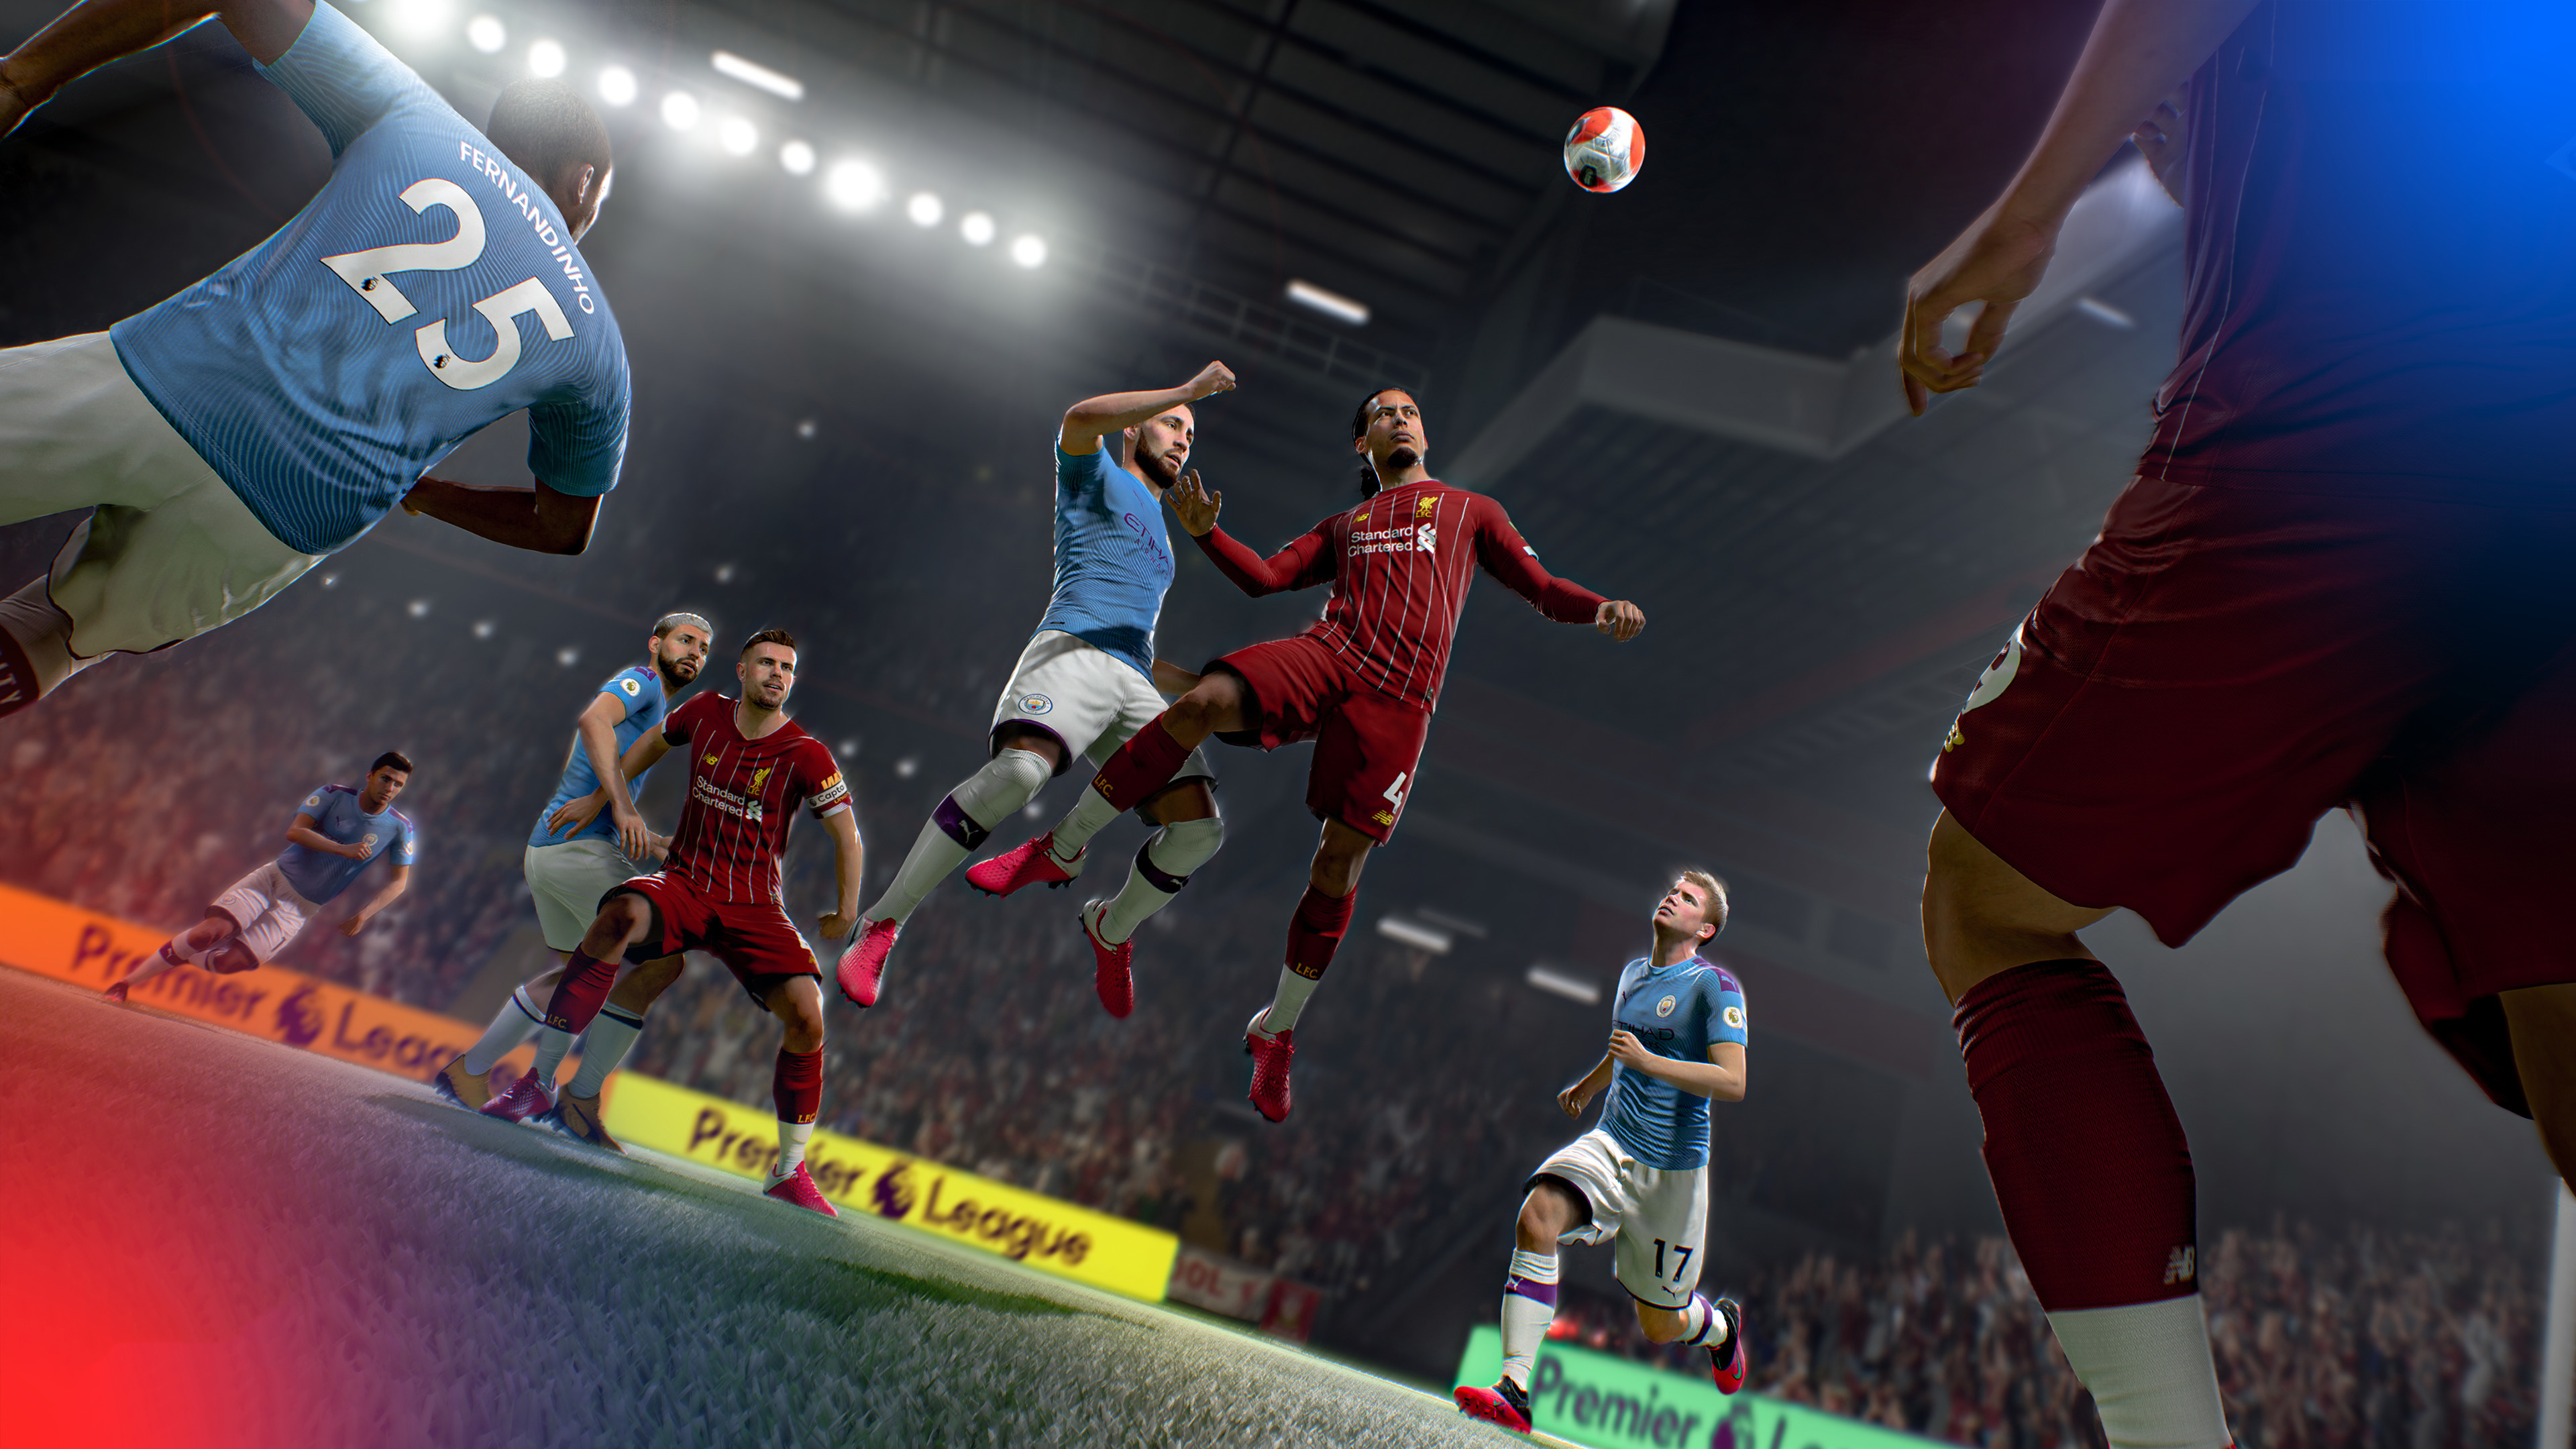 1600x900 Fifa 21 Game 1600x900 Resolution HD 4k Wallpapers ...